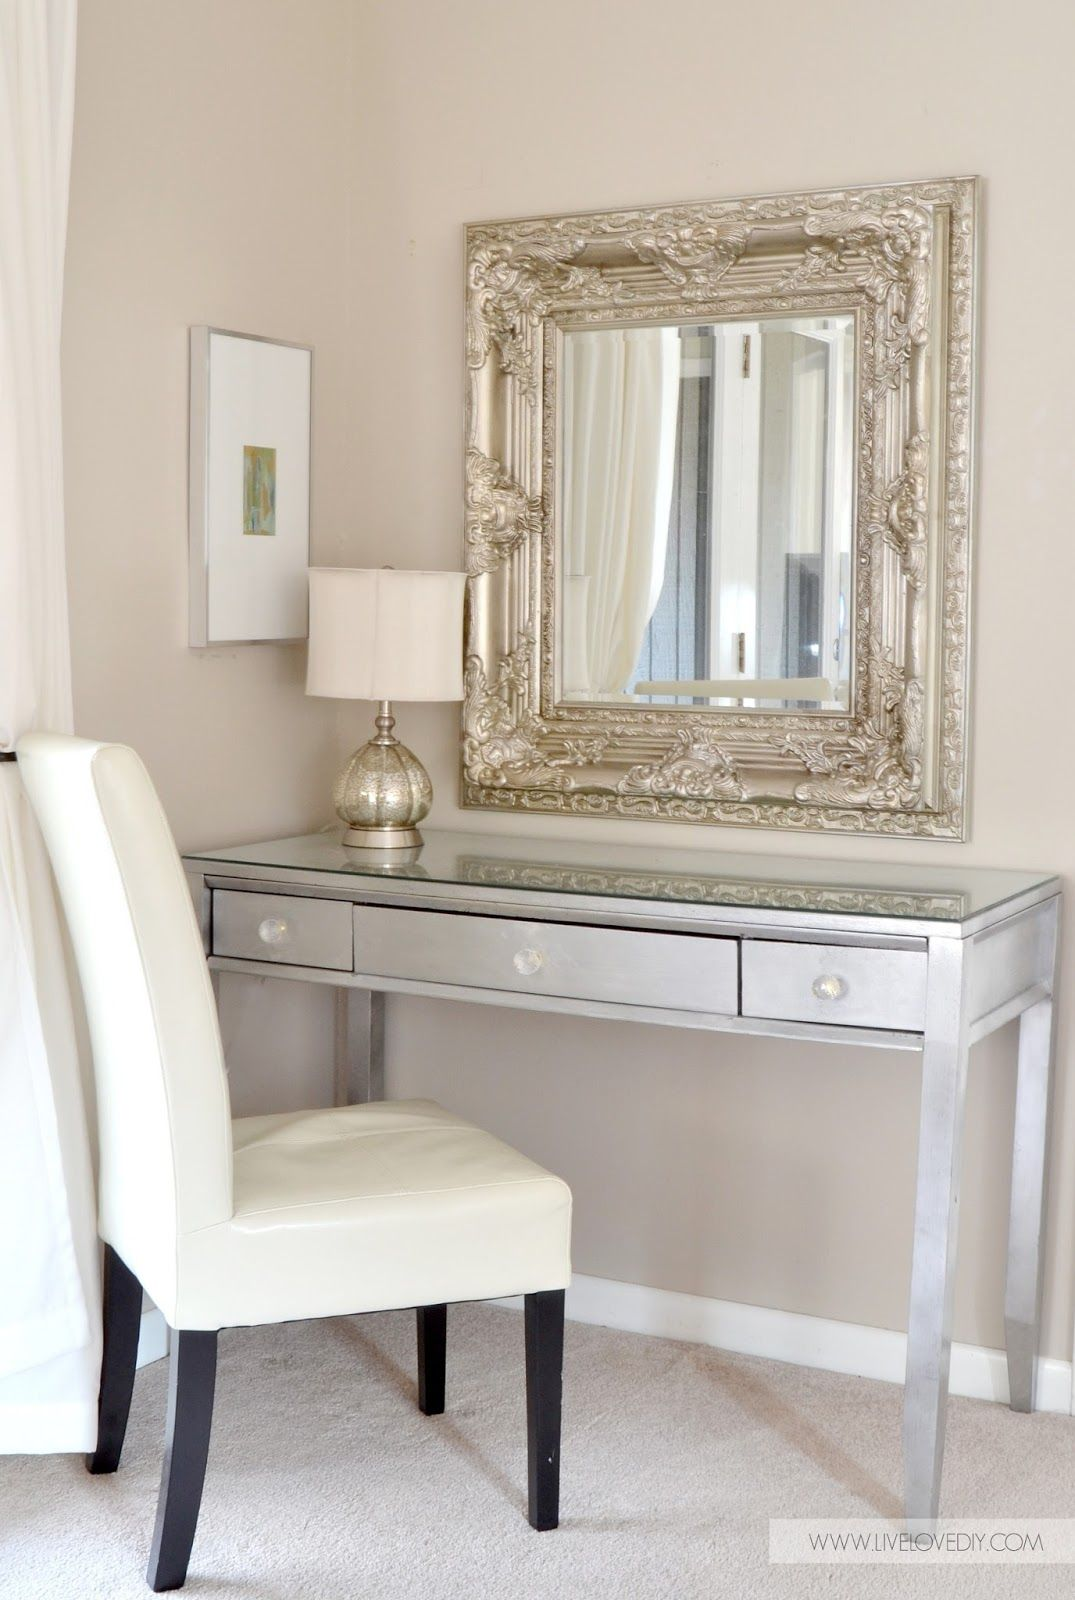 Diy silver leaf vanity made from an old thrift store desk love this